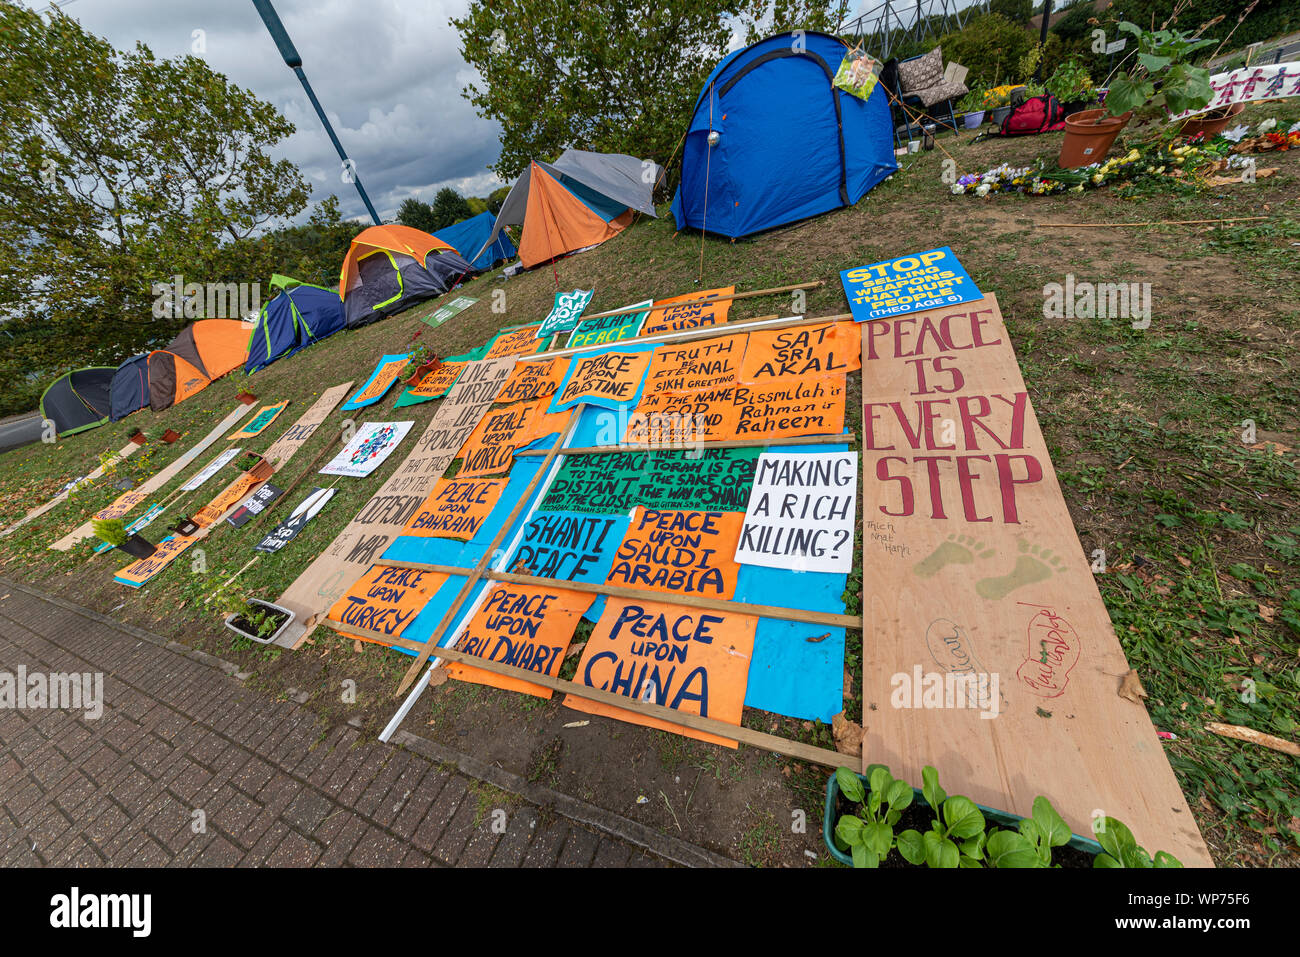 Protest encampment at Defence & Security Equipment International DSEI arms fair trade show, ExCel, London, UK. Protesters tents. Camp. Placards Stock Photo